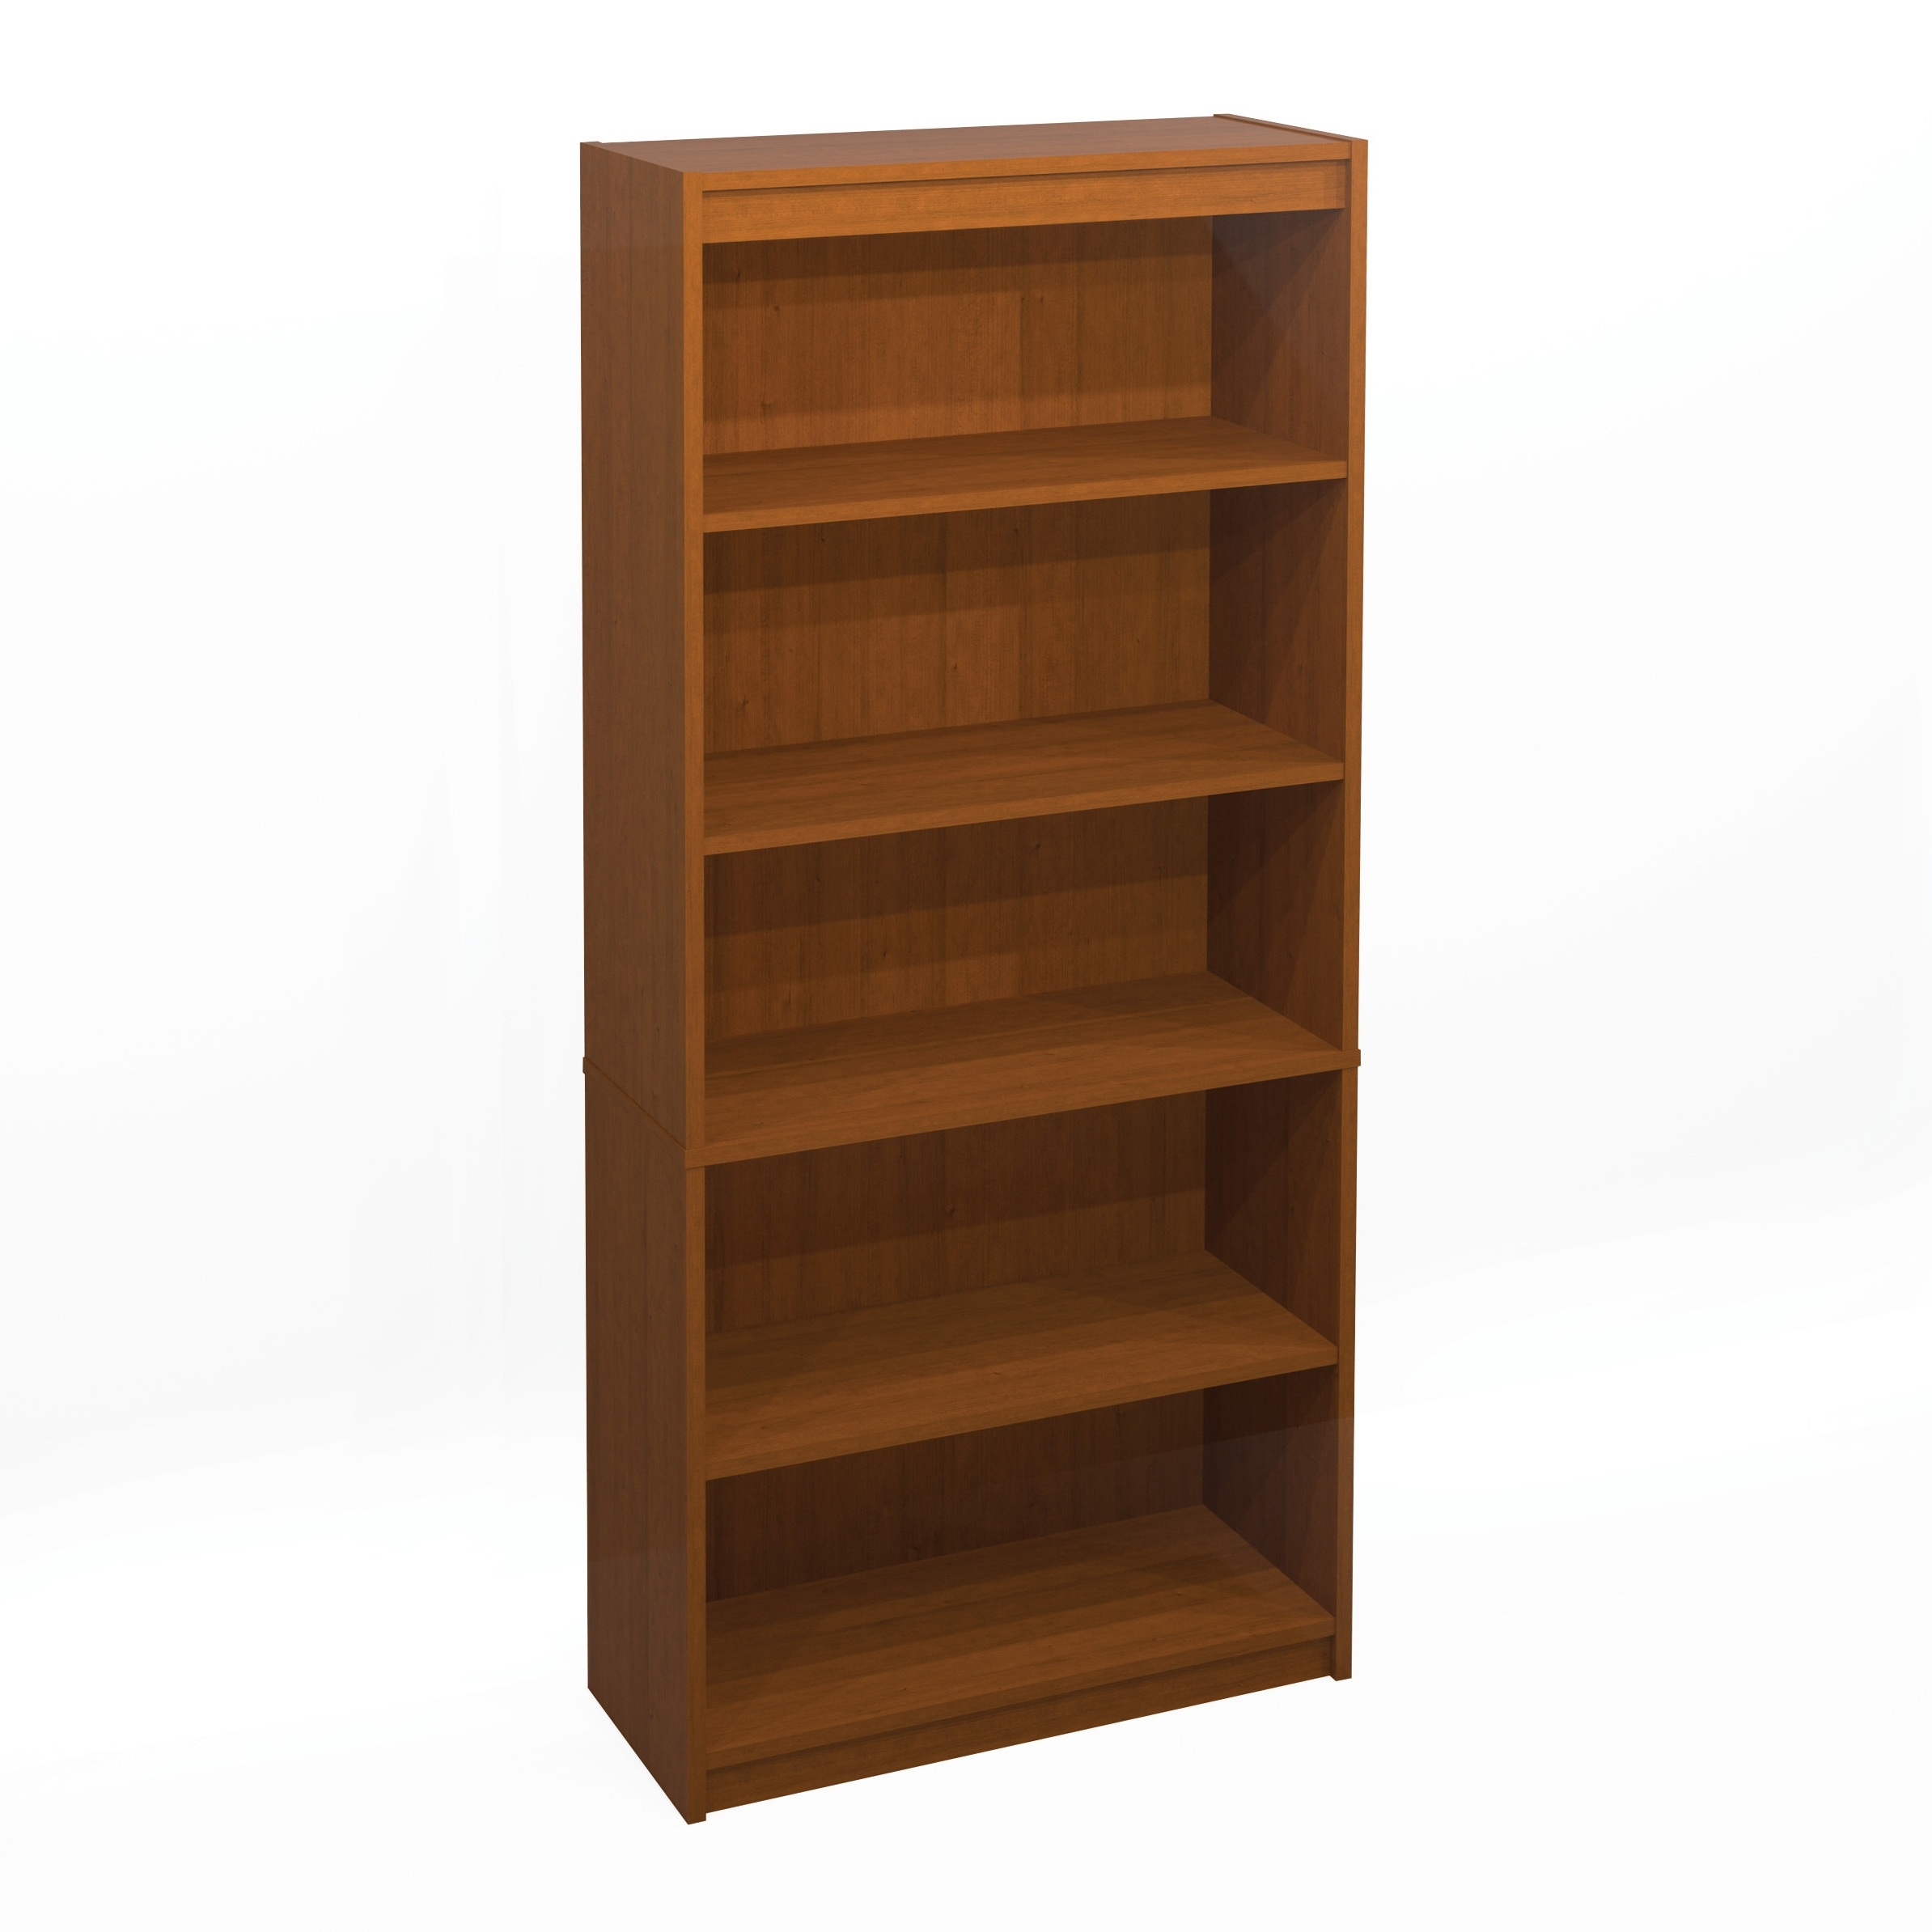 Wooden Bookshelves Within 2017 Decoration : Small Wooden Bookcase Five Shelf Bookshelf Small (View 15 of 15)